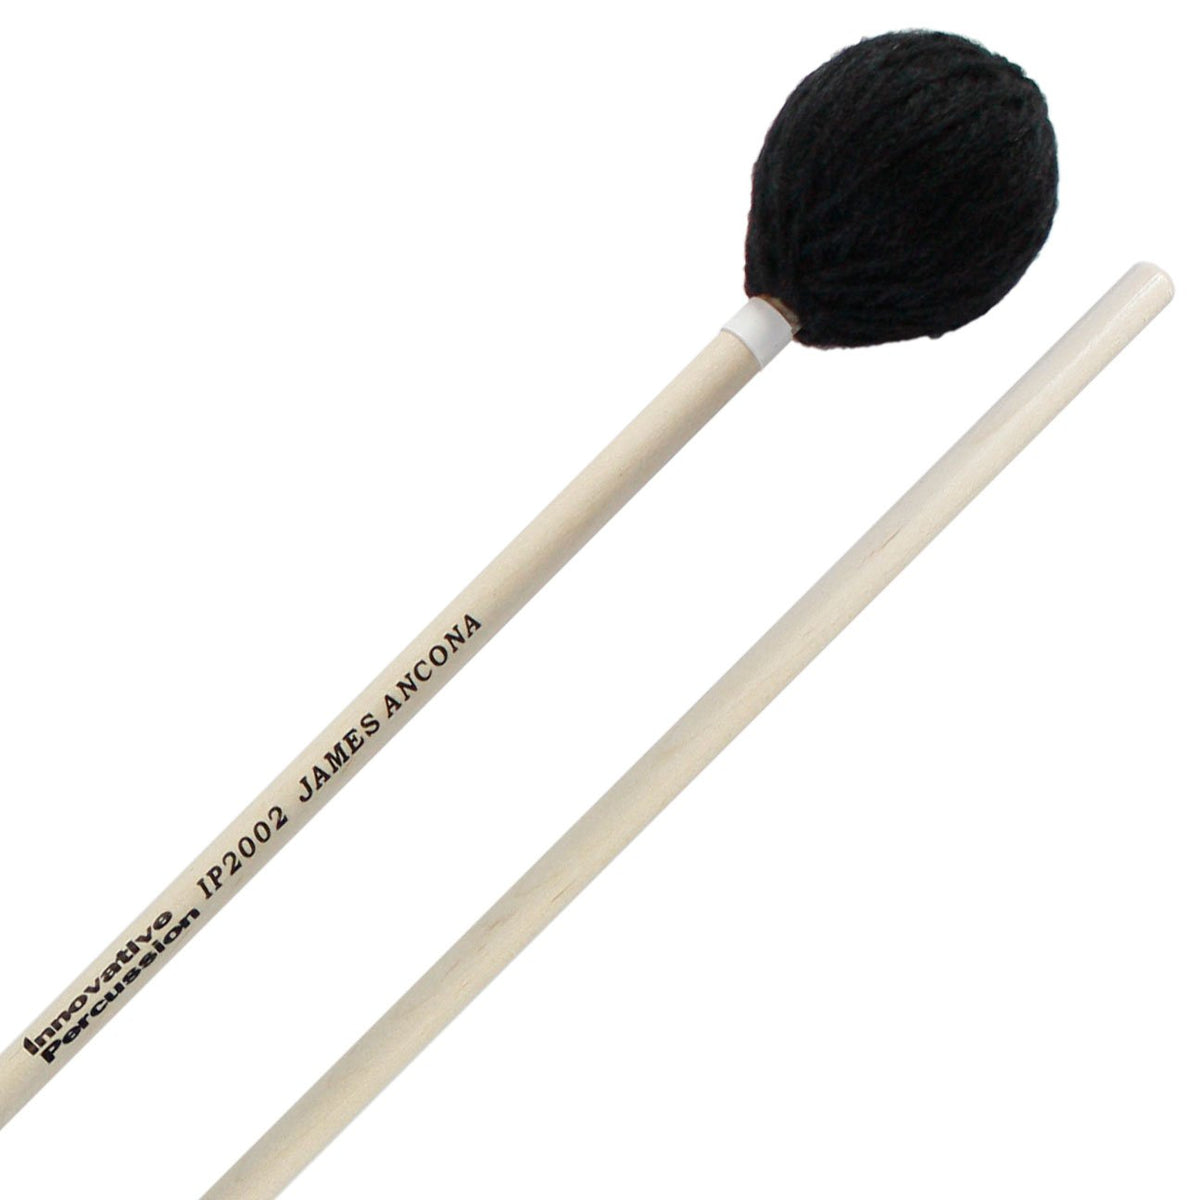 Innovative Percussion - James Ancona Series Marching Marimba/Vibraphone Mallets-Percussion-Innovative Percussion-IP2002: Soft Marimba-Music Elements